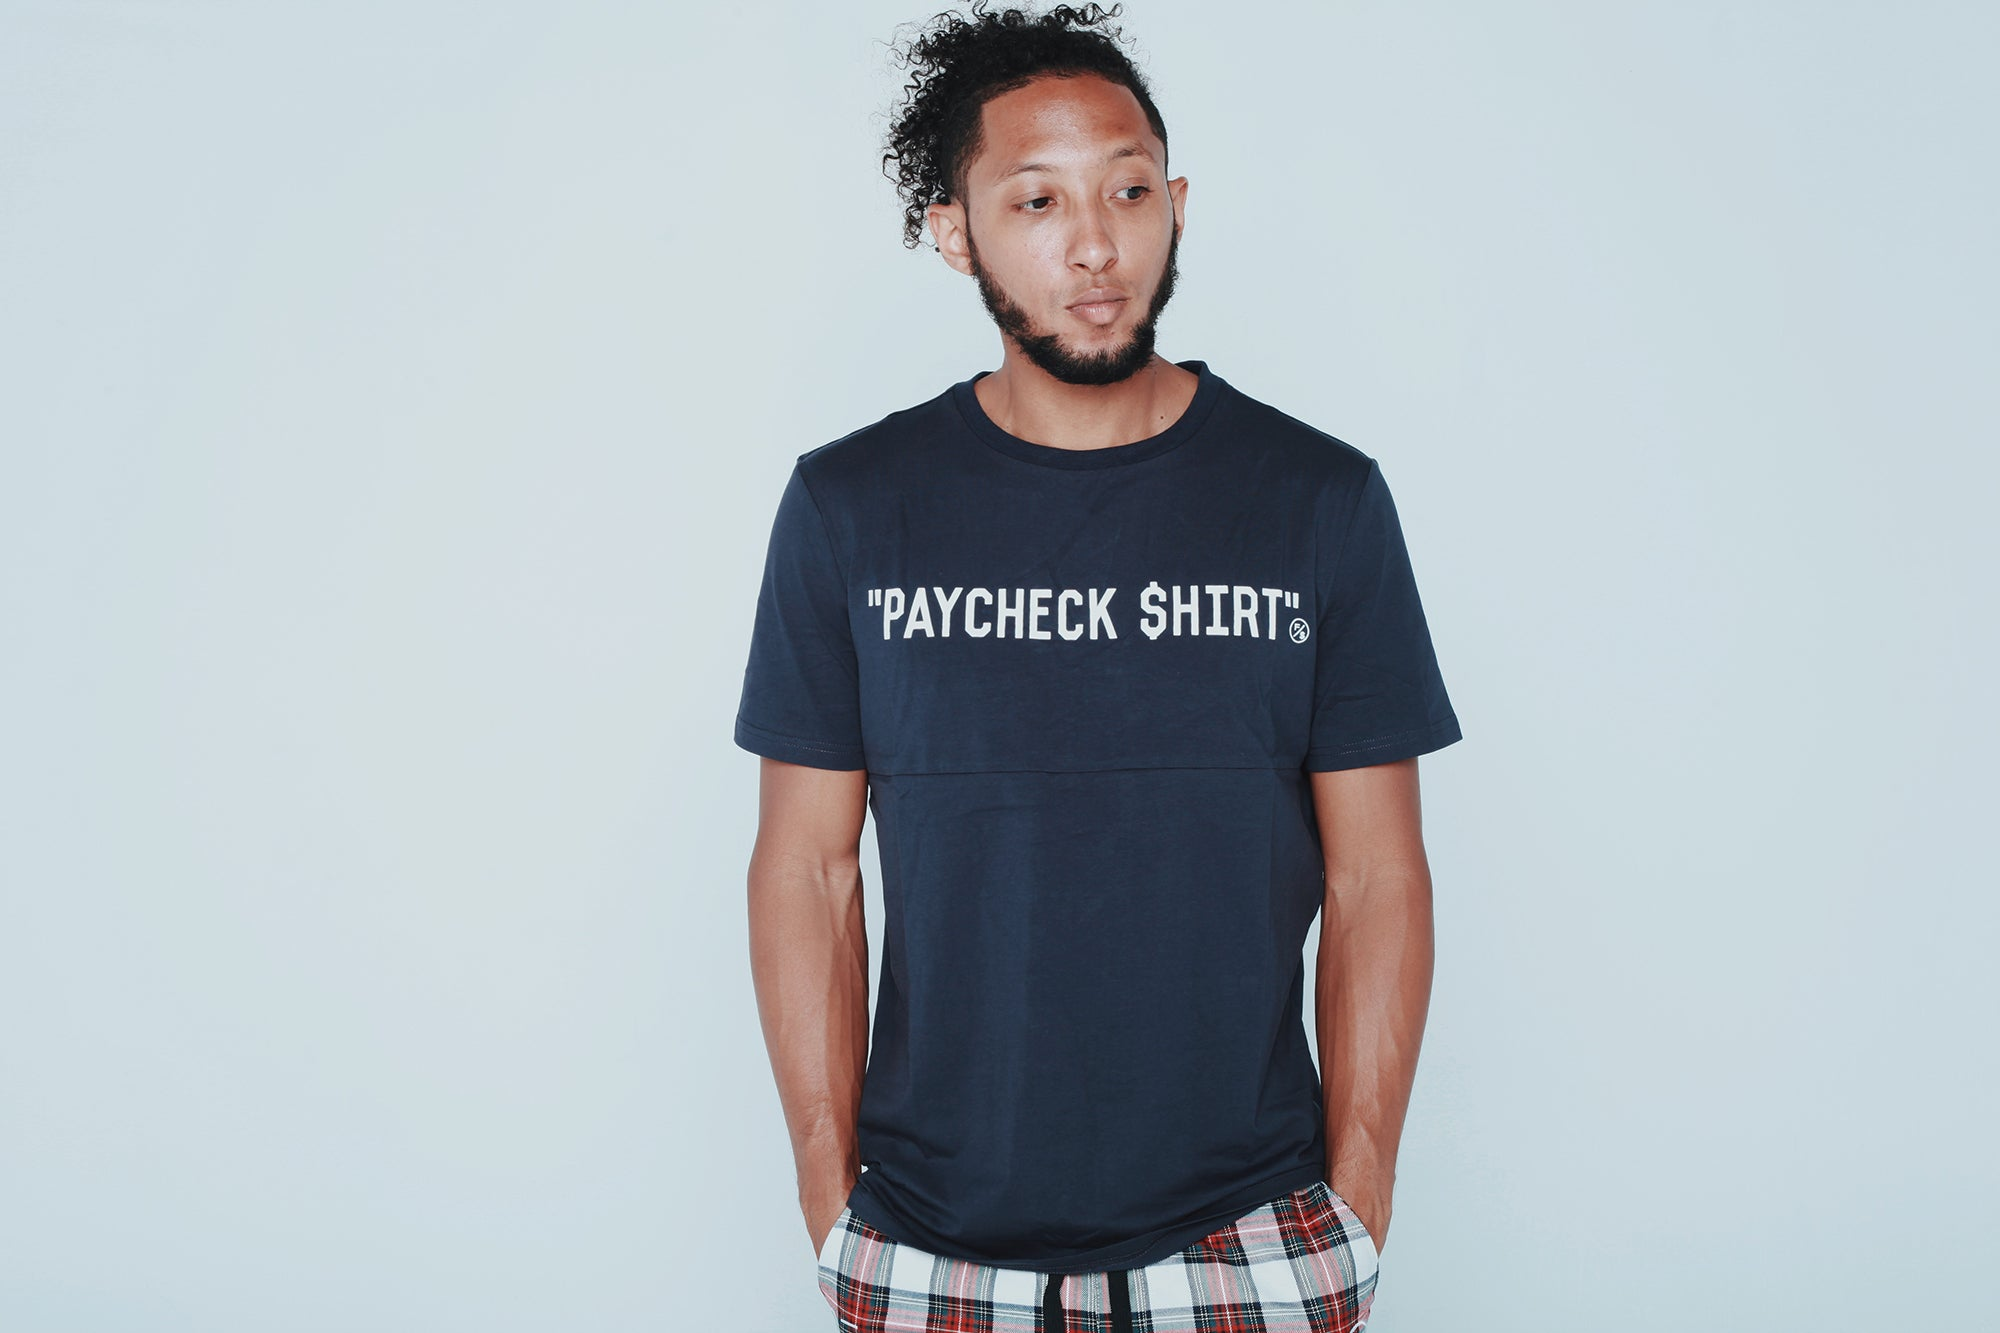 Paycheck Shirt (Avail in Black or Navy)